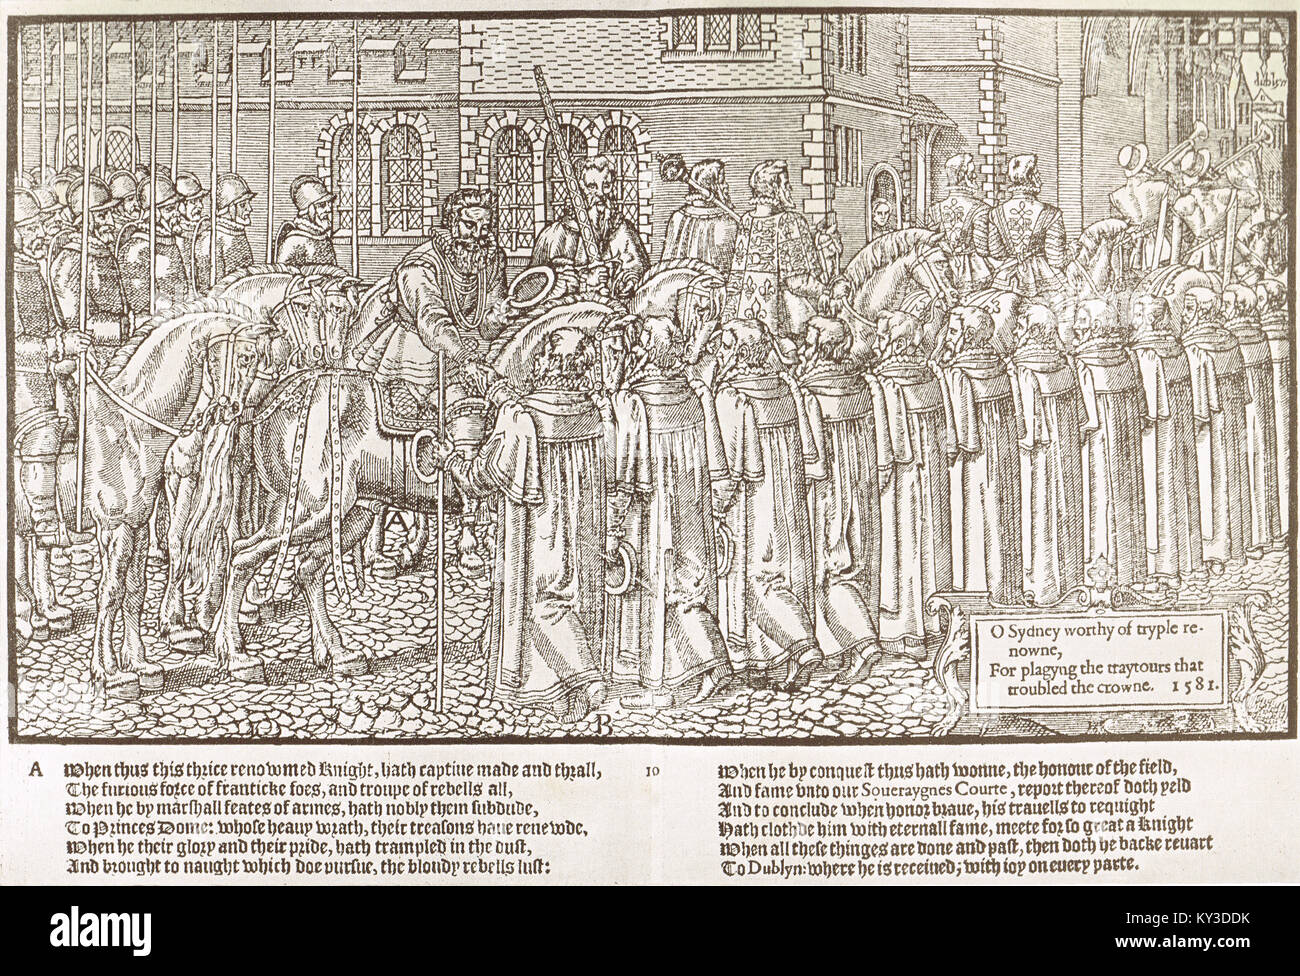 The reception of Sir Henry Sidney by the mayor and aldermen of Dublin after a victory circa 1578 - Stock Image